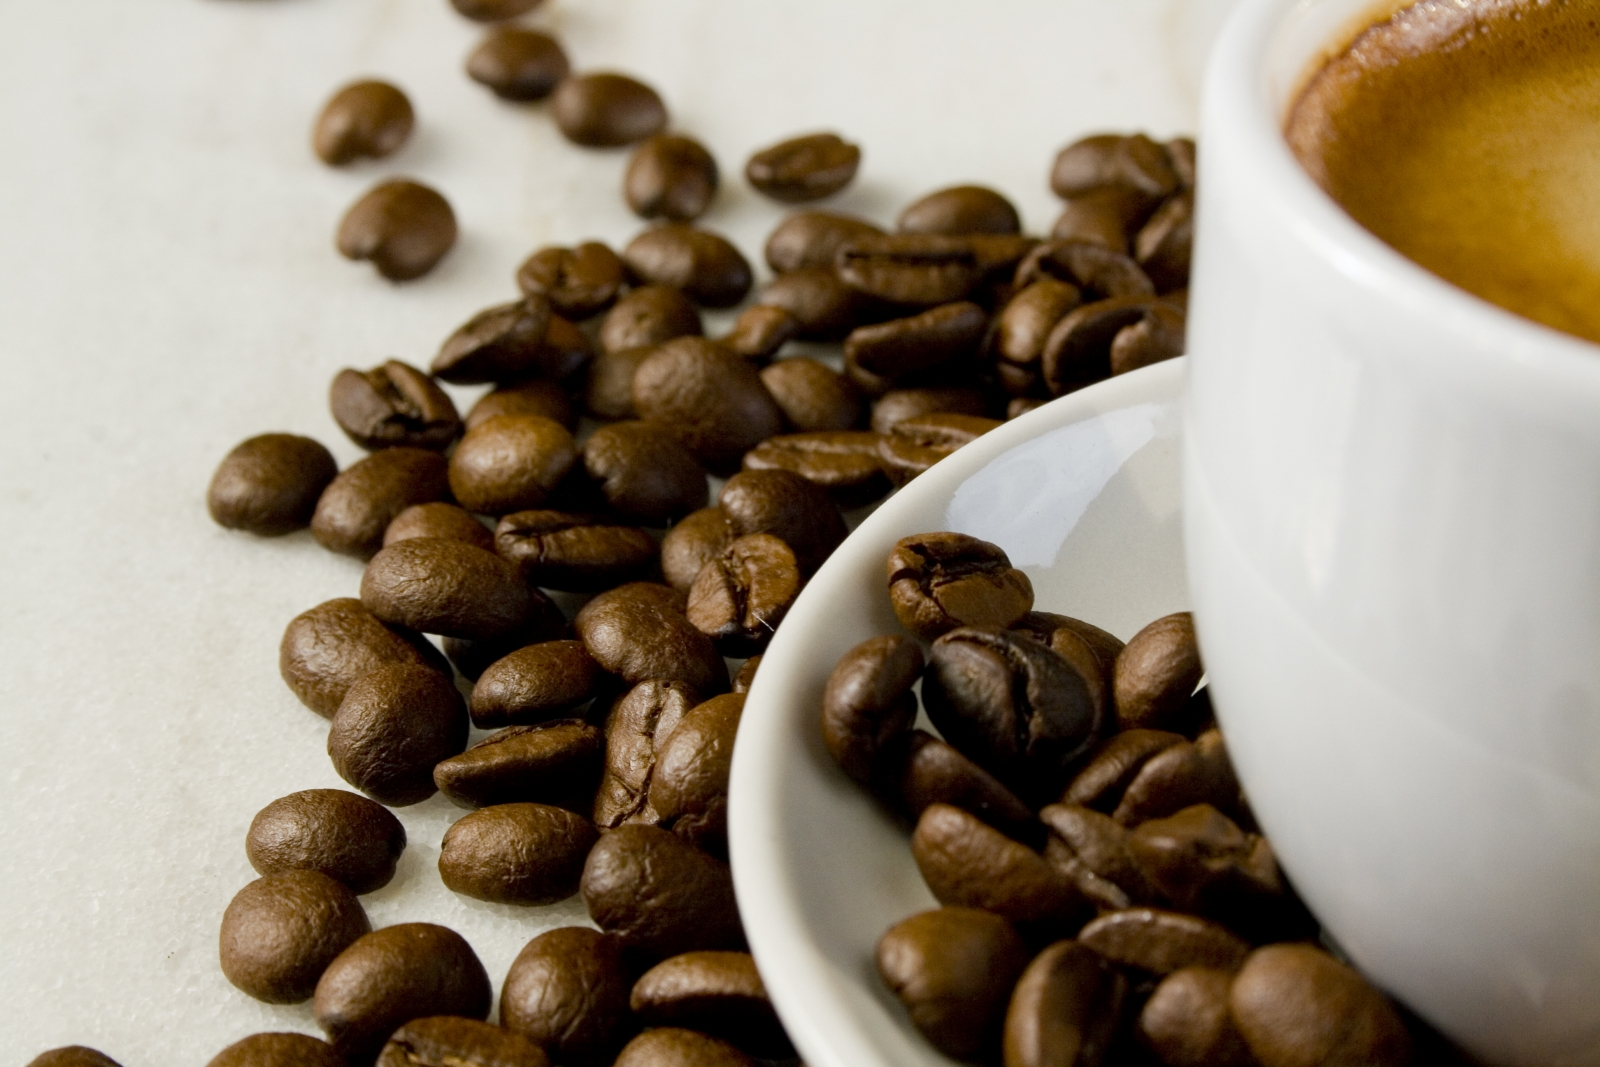 Drinking Coffee Can Help You Live Longer